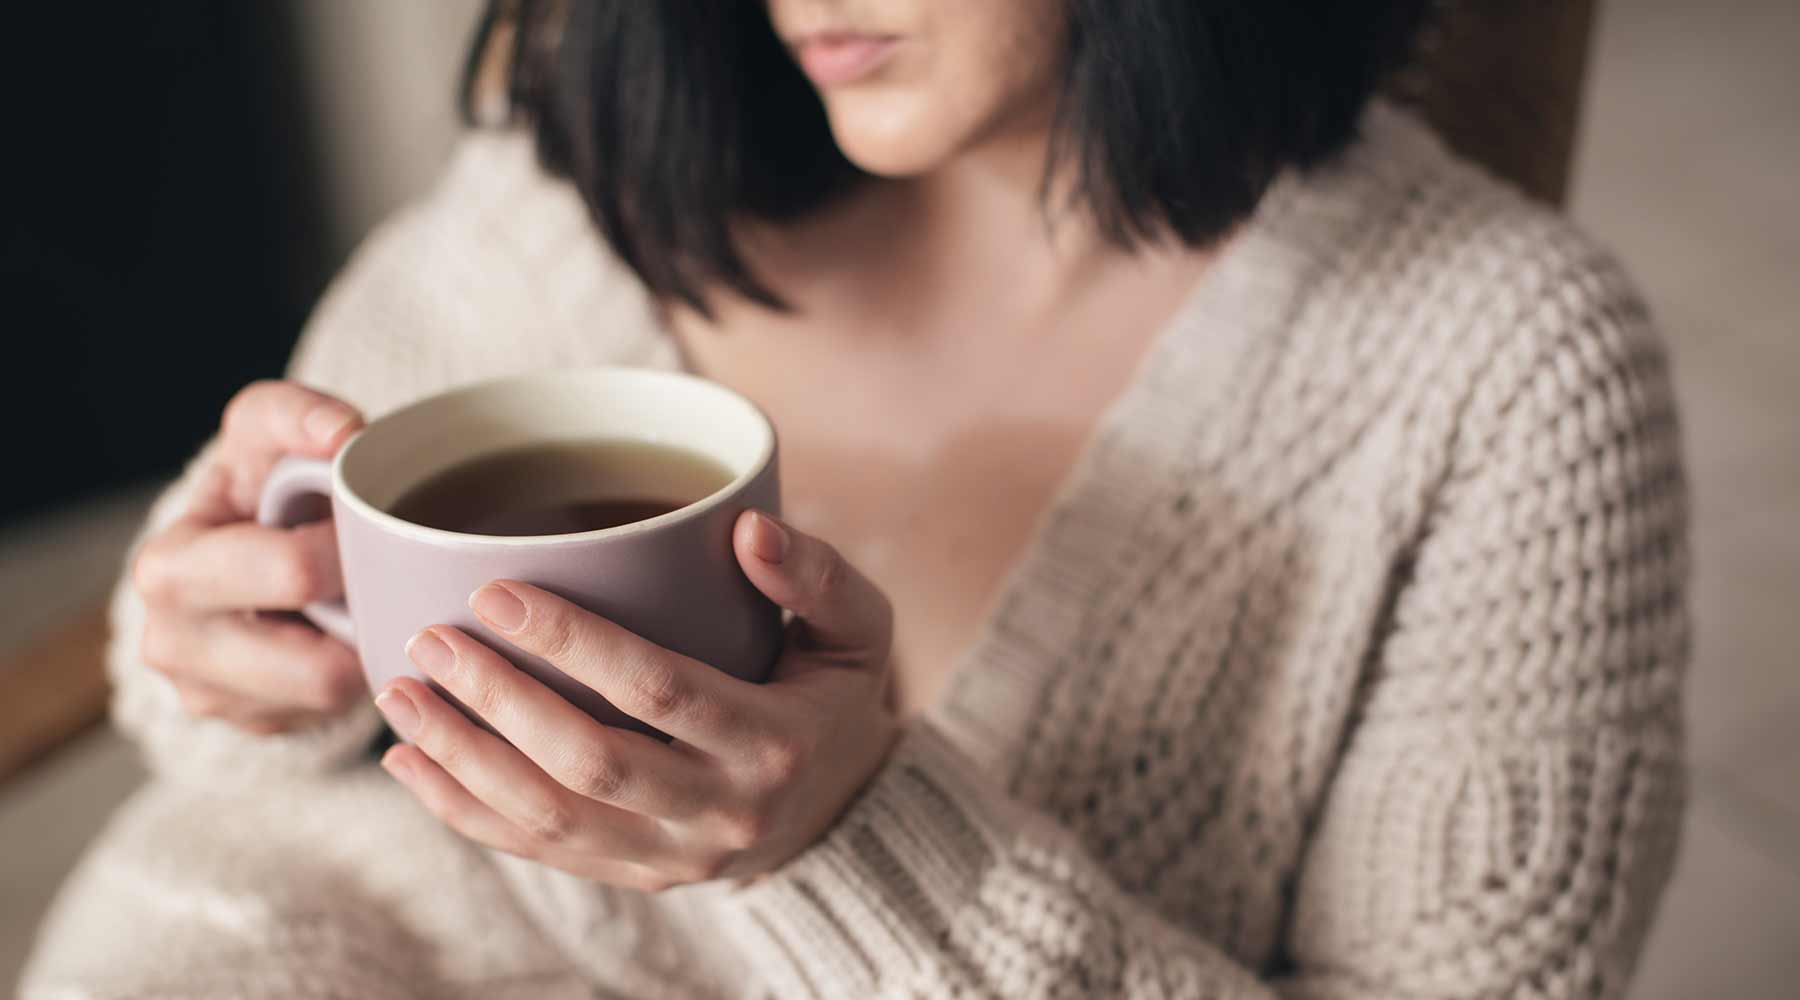 Woman in beige cable knit deep v neck sweater holding a cup of tea.